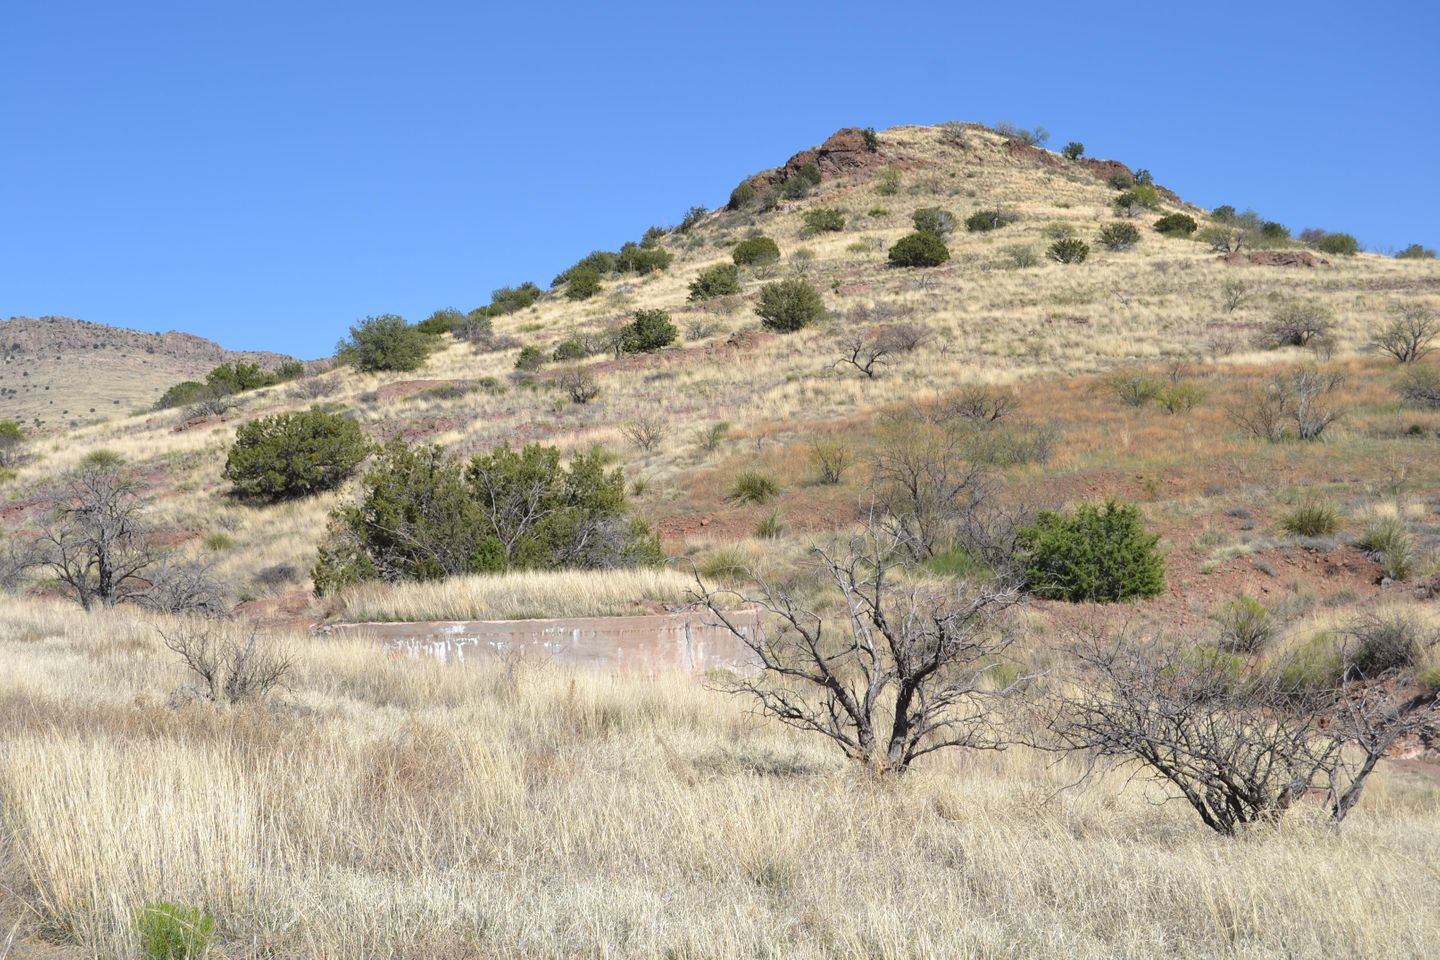 Jackson Cabin/Muleshoe Ranch Road - Waypoint 11: Pride Ranch Cabin Site & Windmill